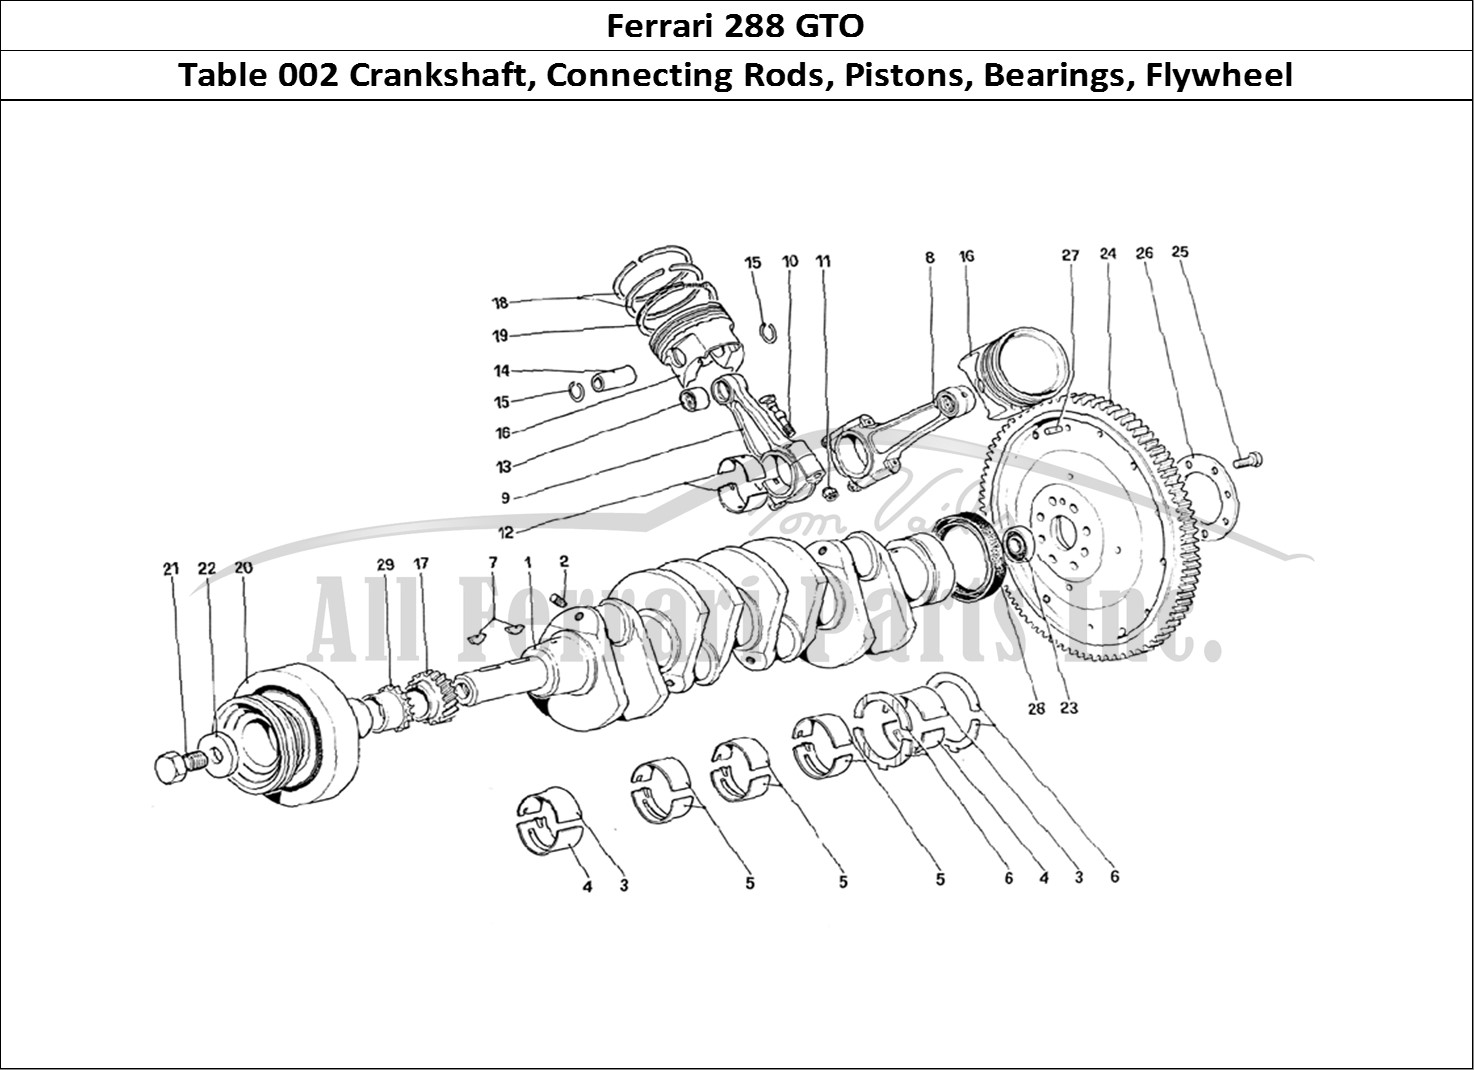 buy original ferrari 288 gto 002 crankshaft  connecting